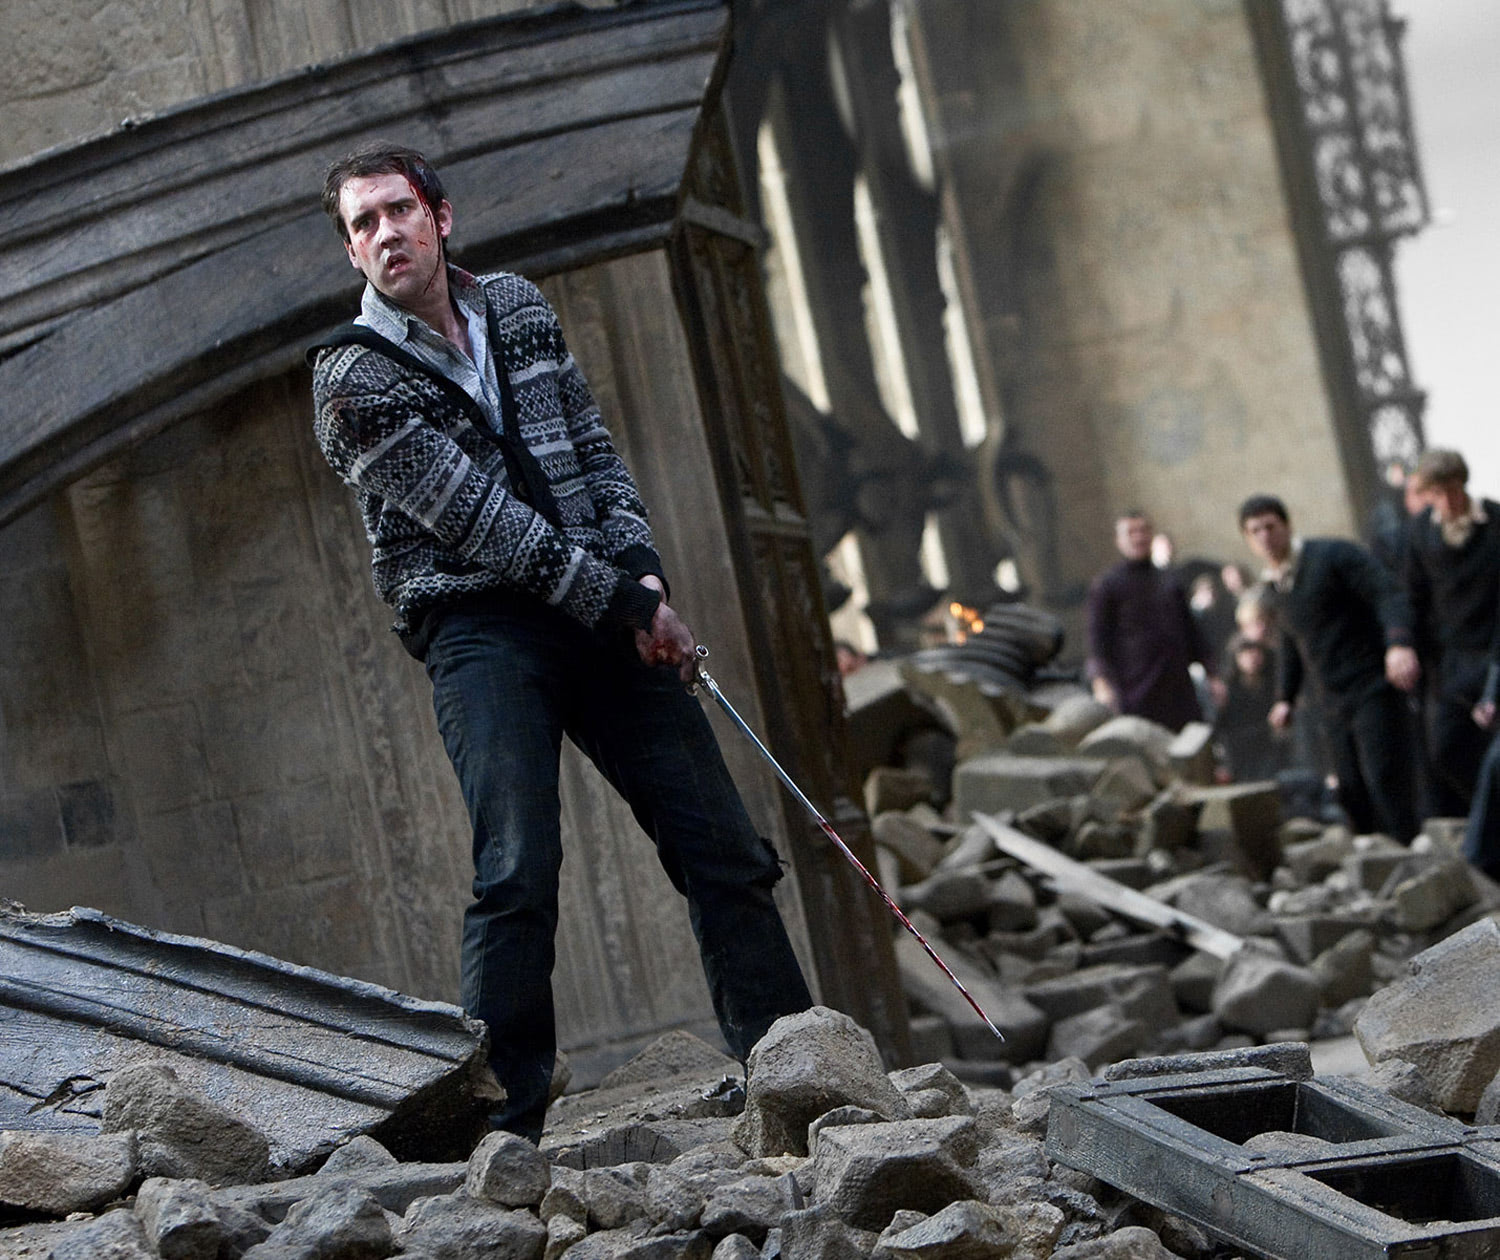 Neville wields the Sword of Gryffindor